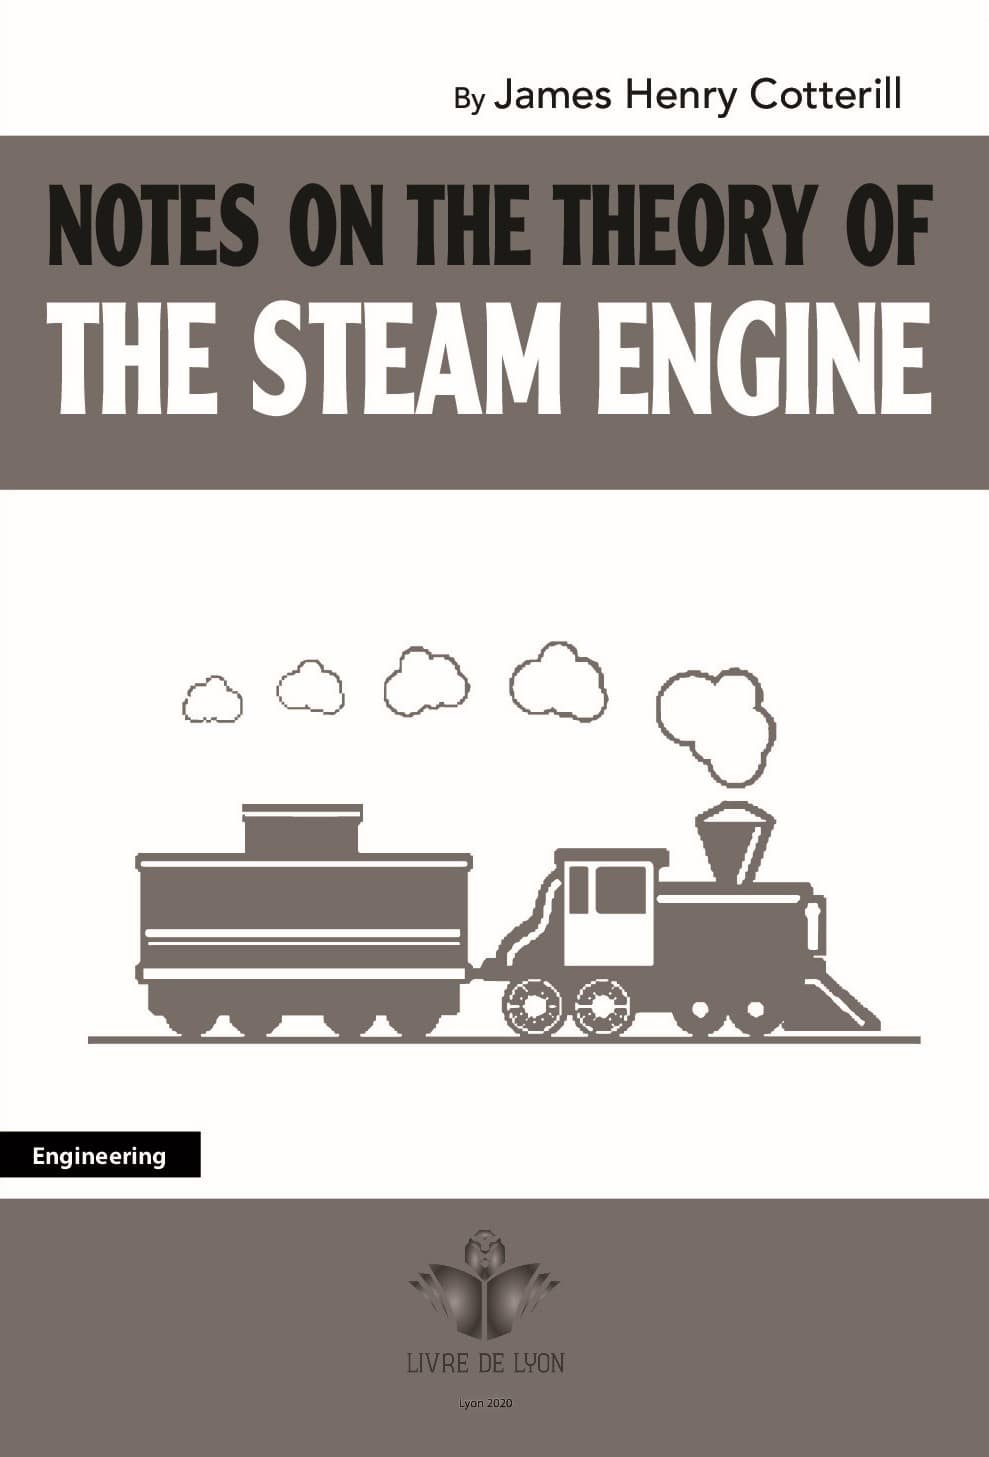 Notes on the Theory of the Steam Engine